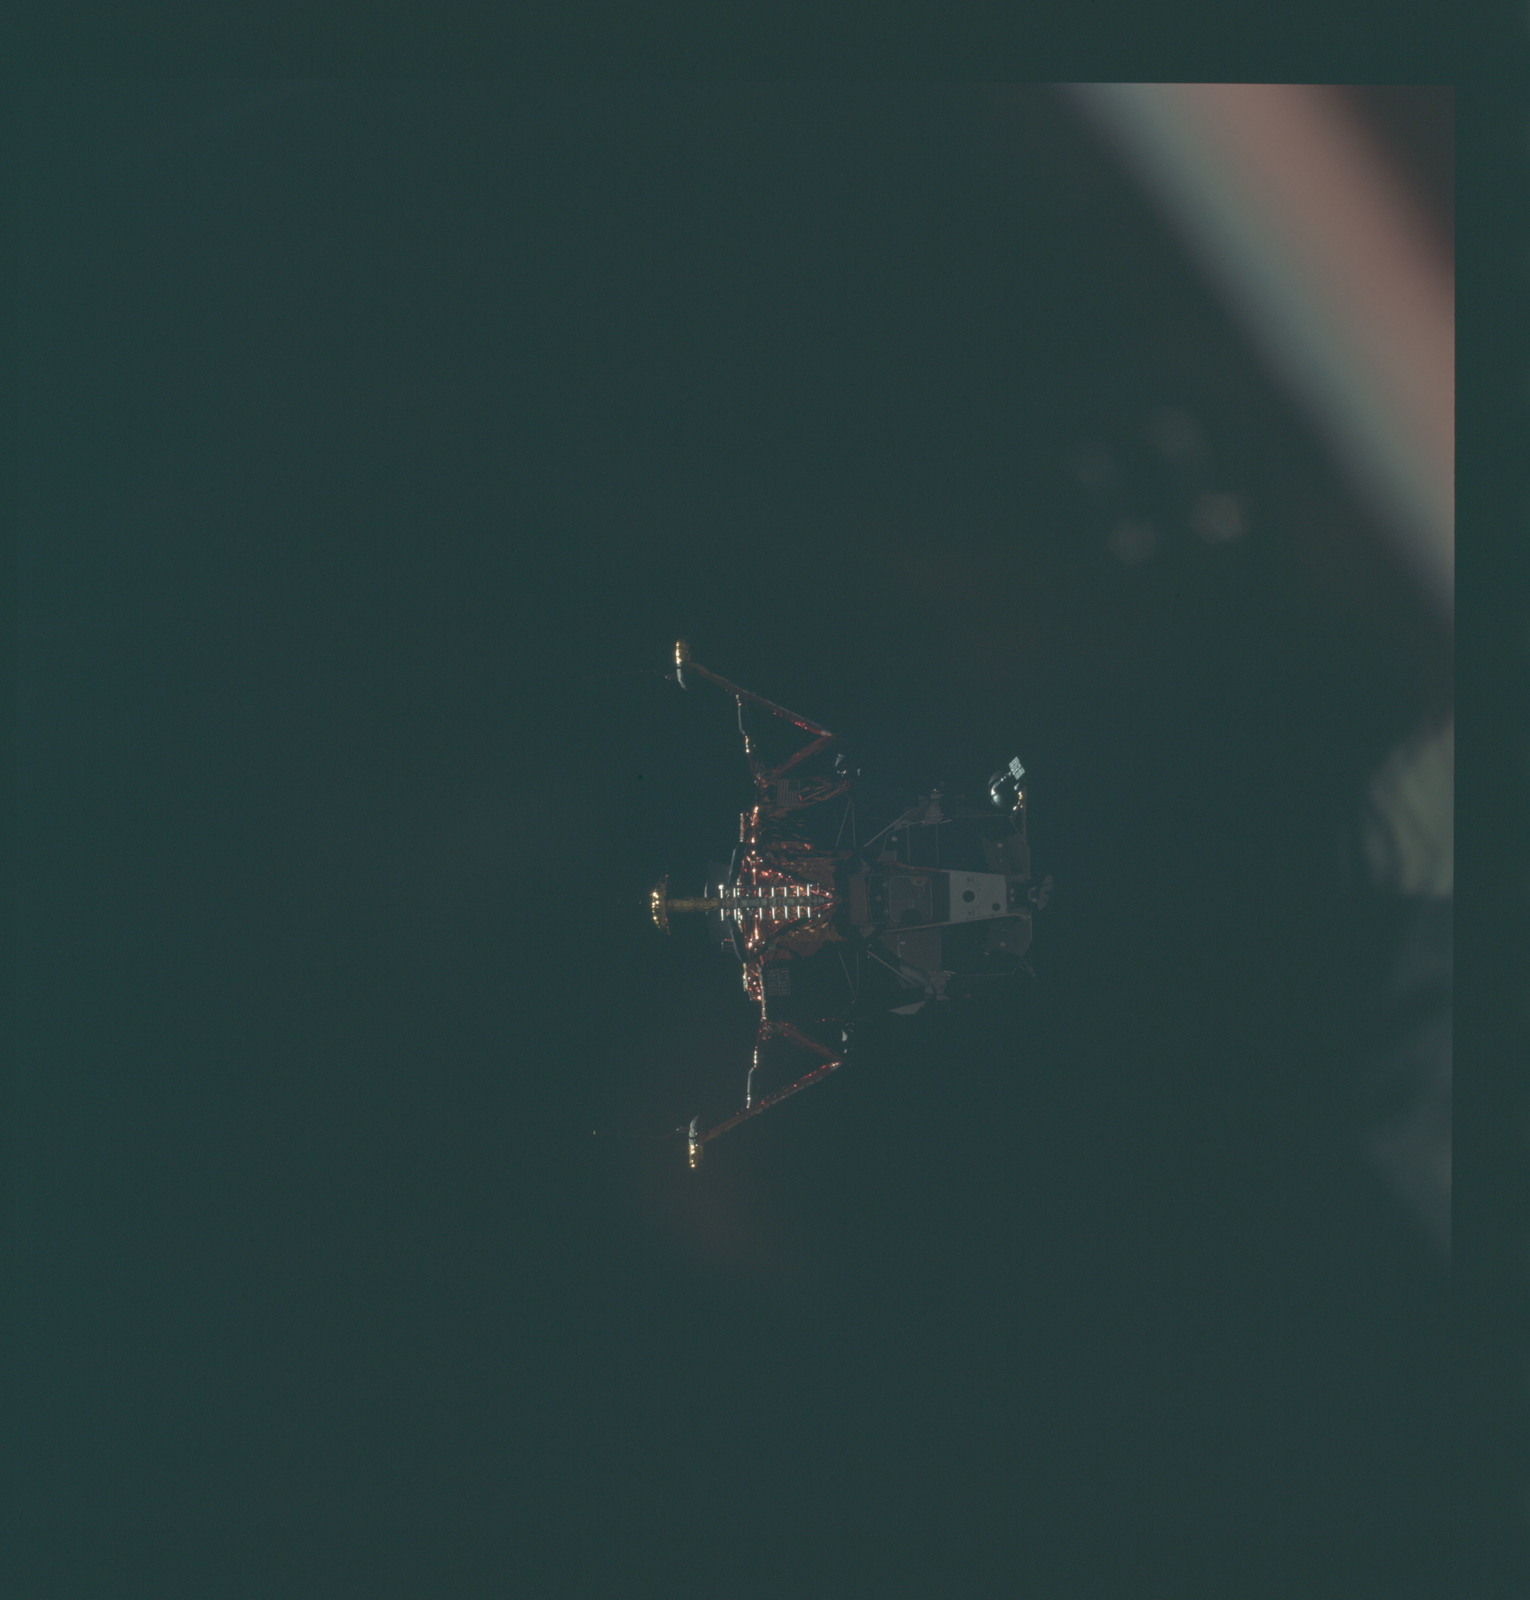 AS11-44-6593 - Apollo 11 - Apollo 11 Mission image - View of Lunar Module separation from the Command Module